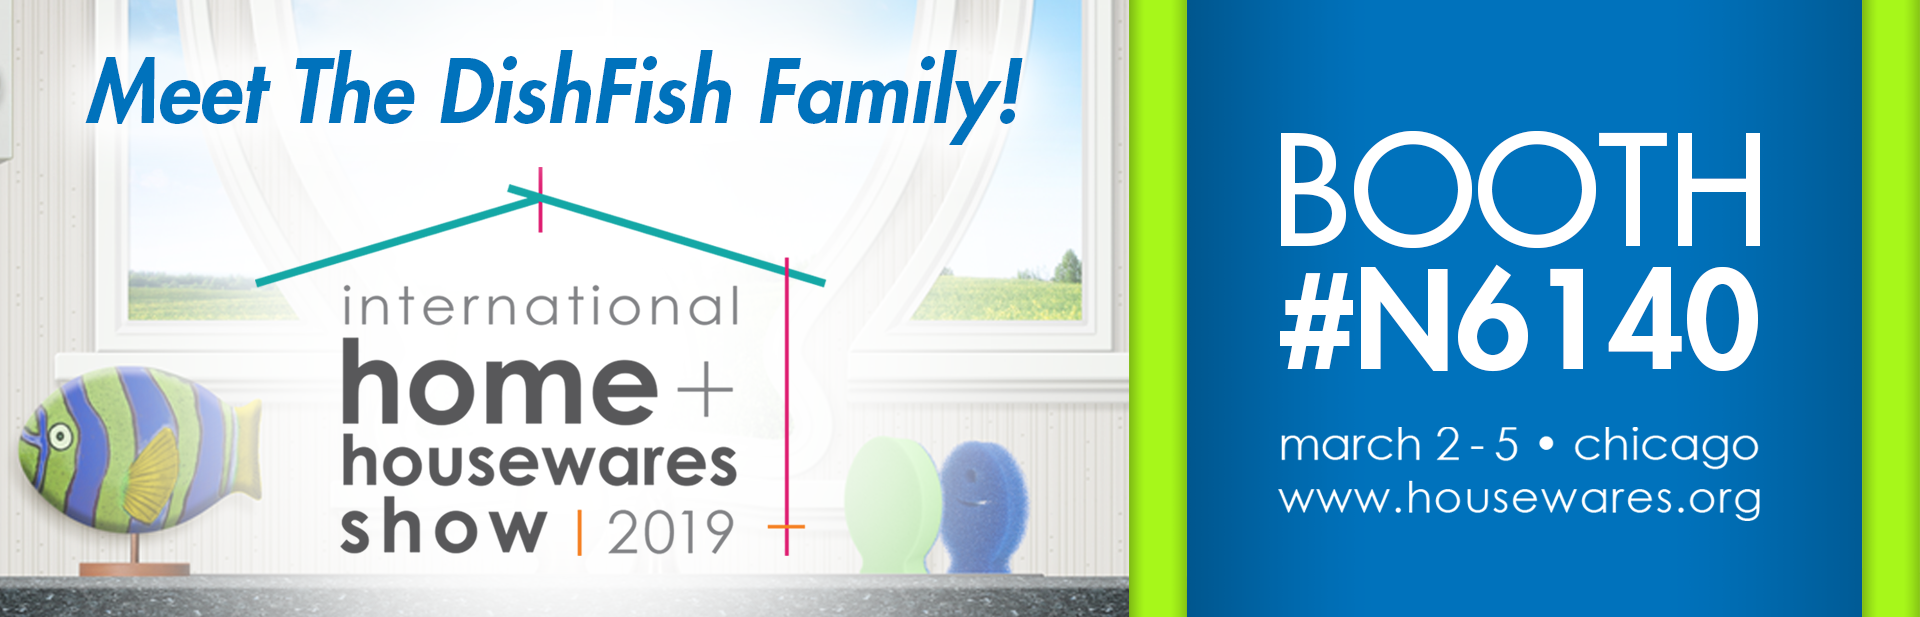 dishfish-international-home-and-housewares-show-2019-ver-02.png